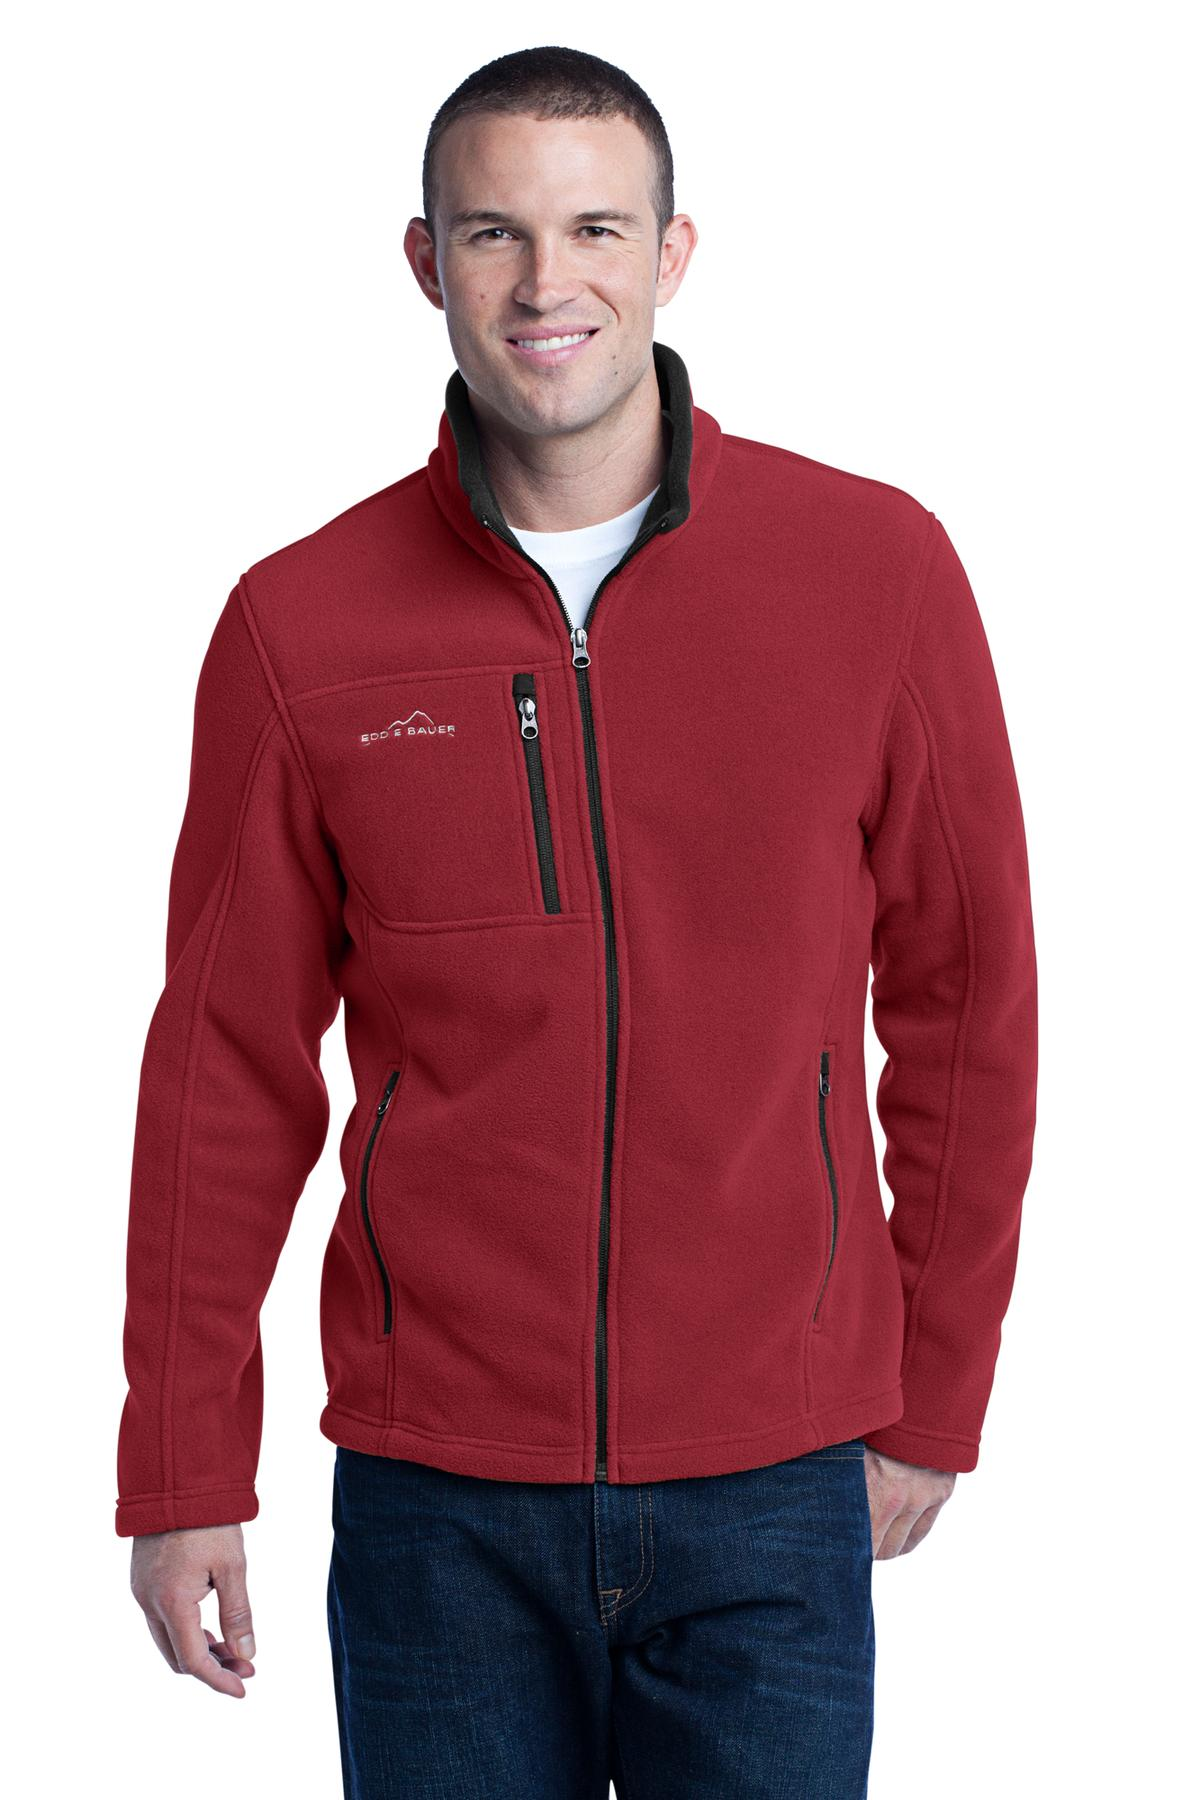 Outerwear-Polyester-Fleece-4